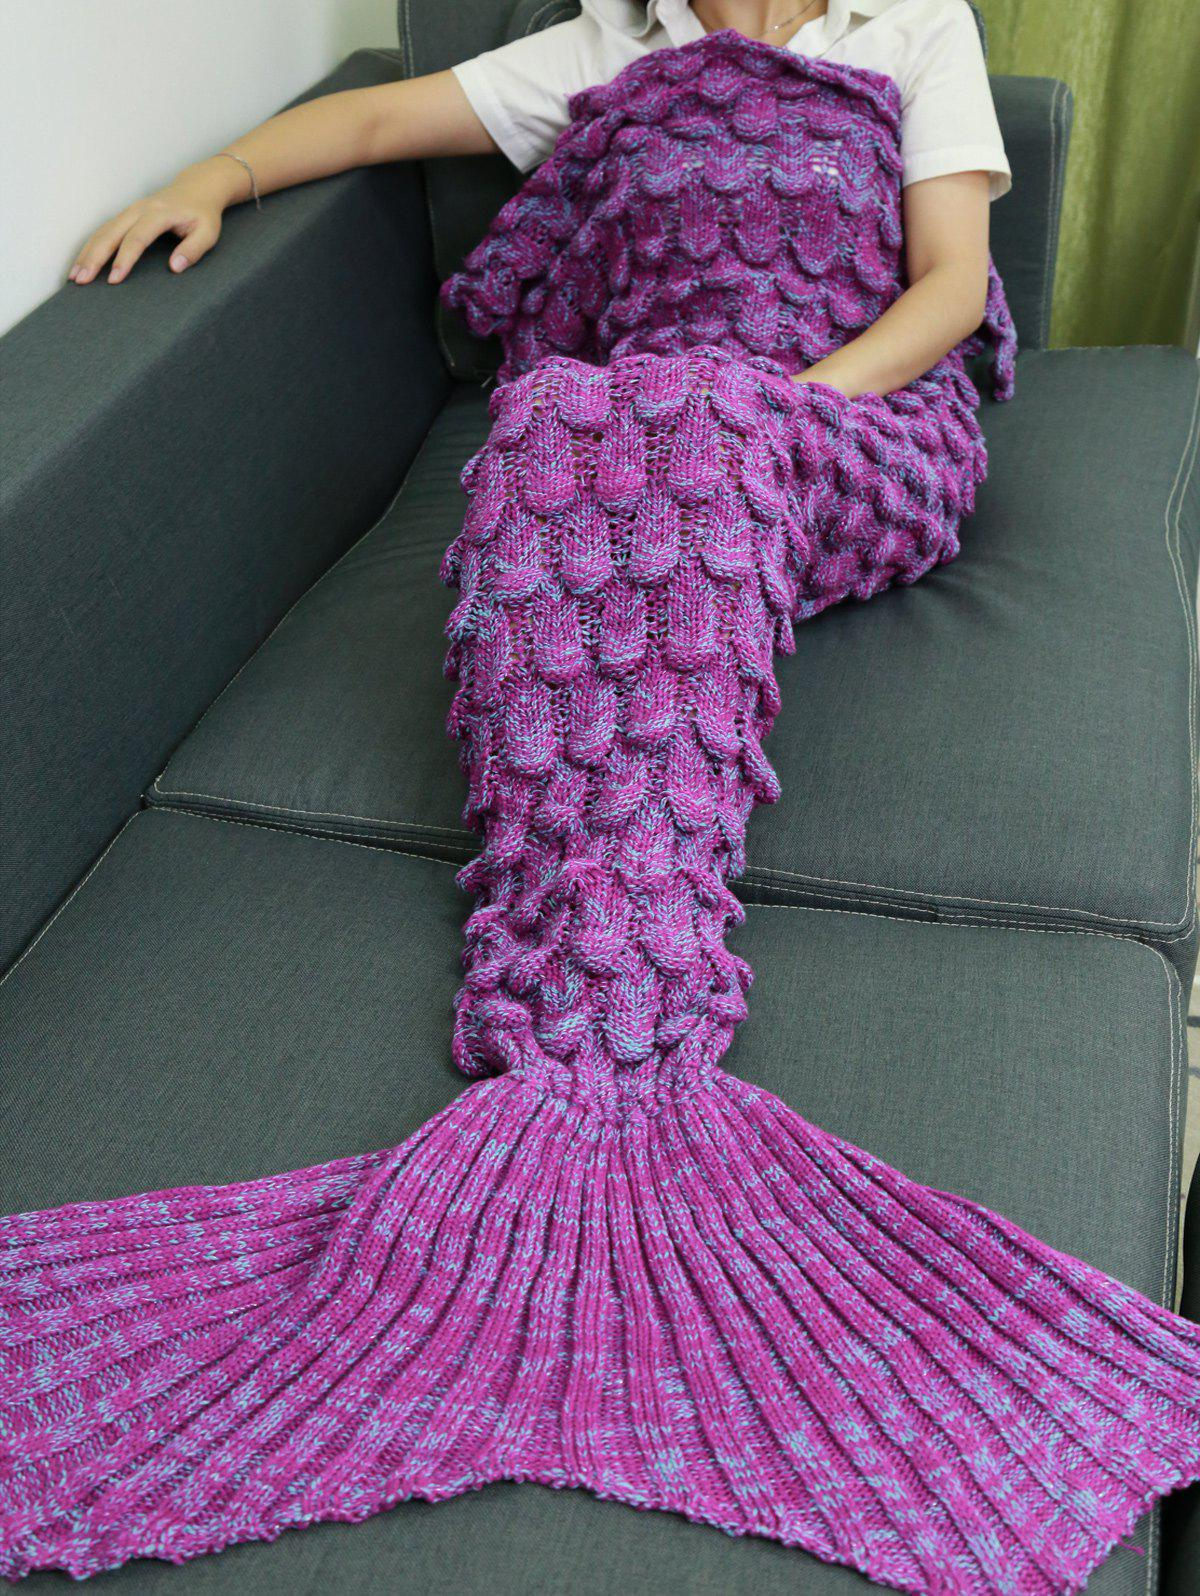 2018 Knitting Fish Scales Design Mermaid Tail Style Blanket In Light Purple Rosegal Com